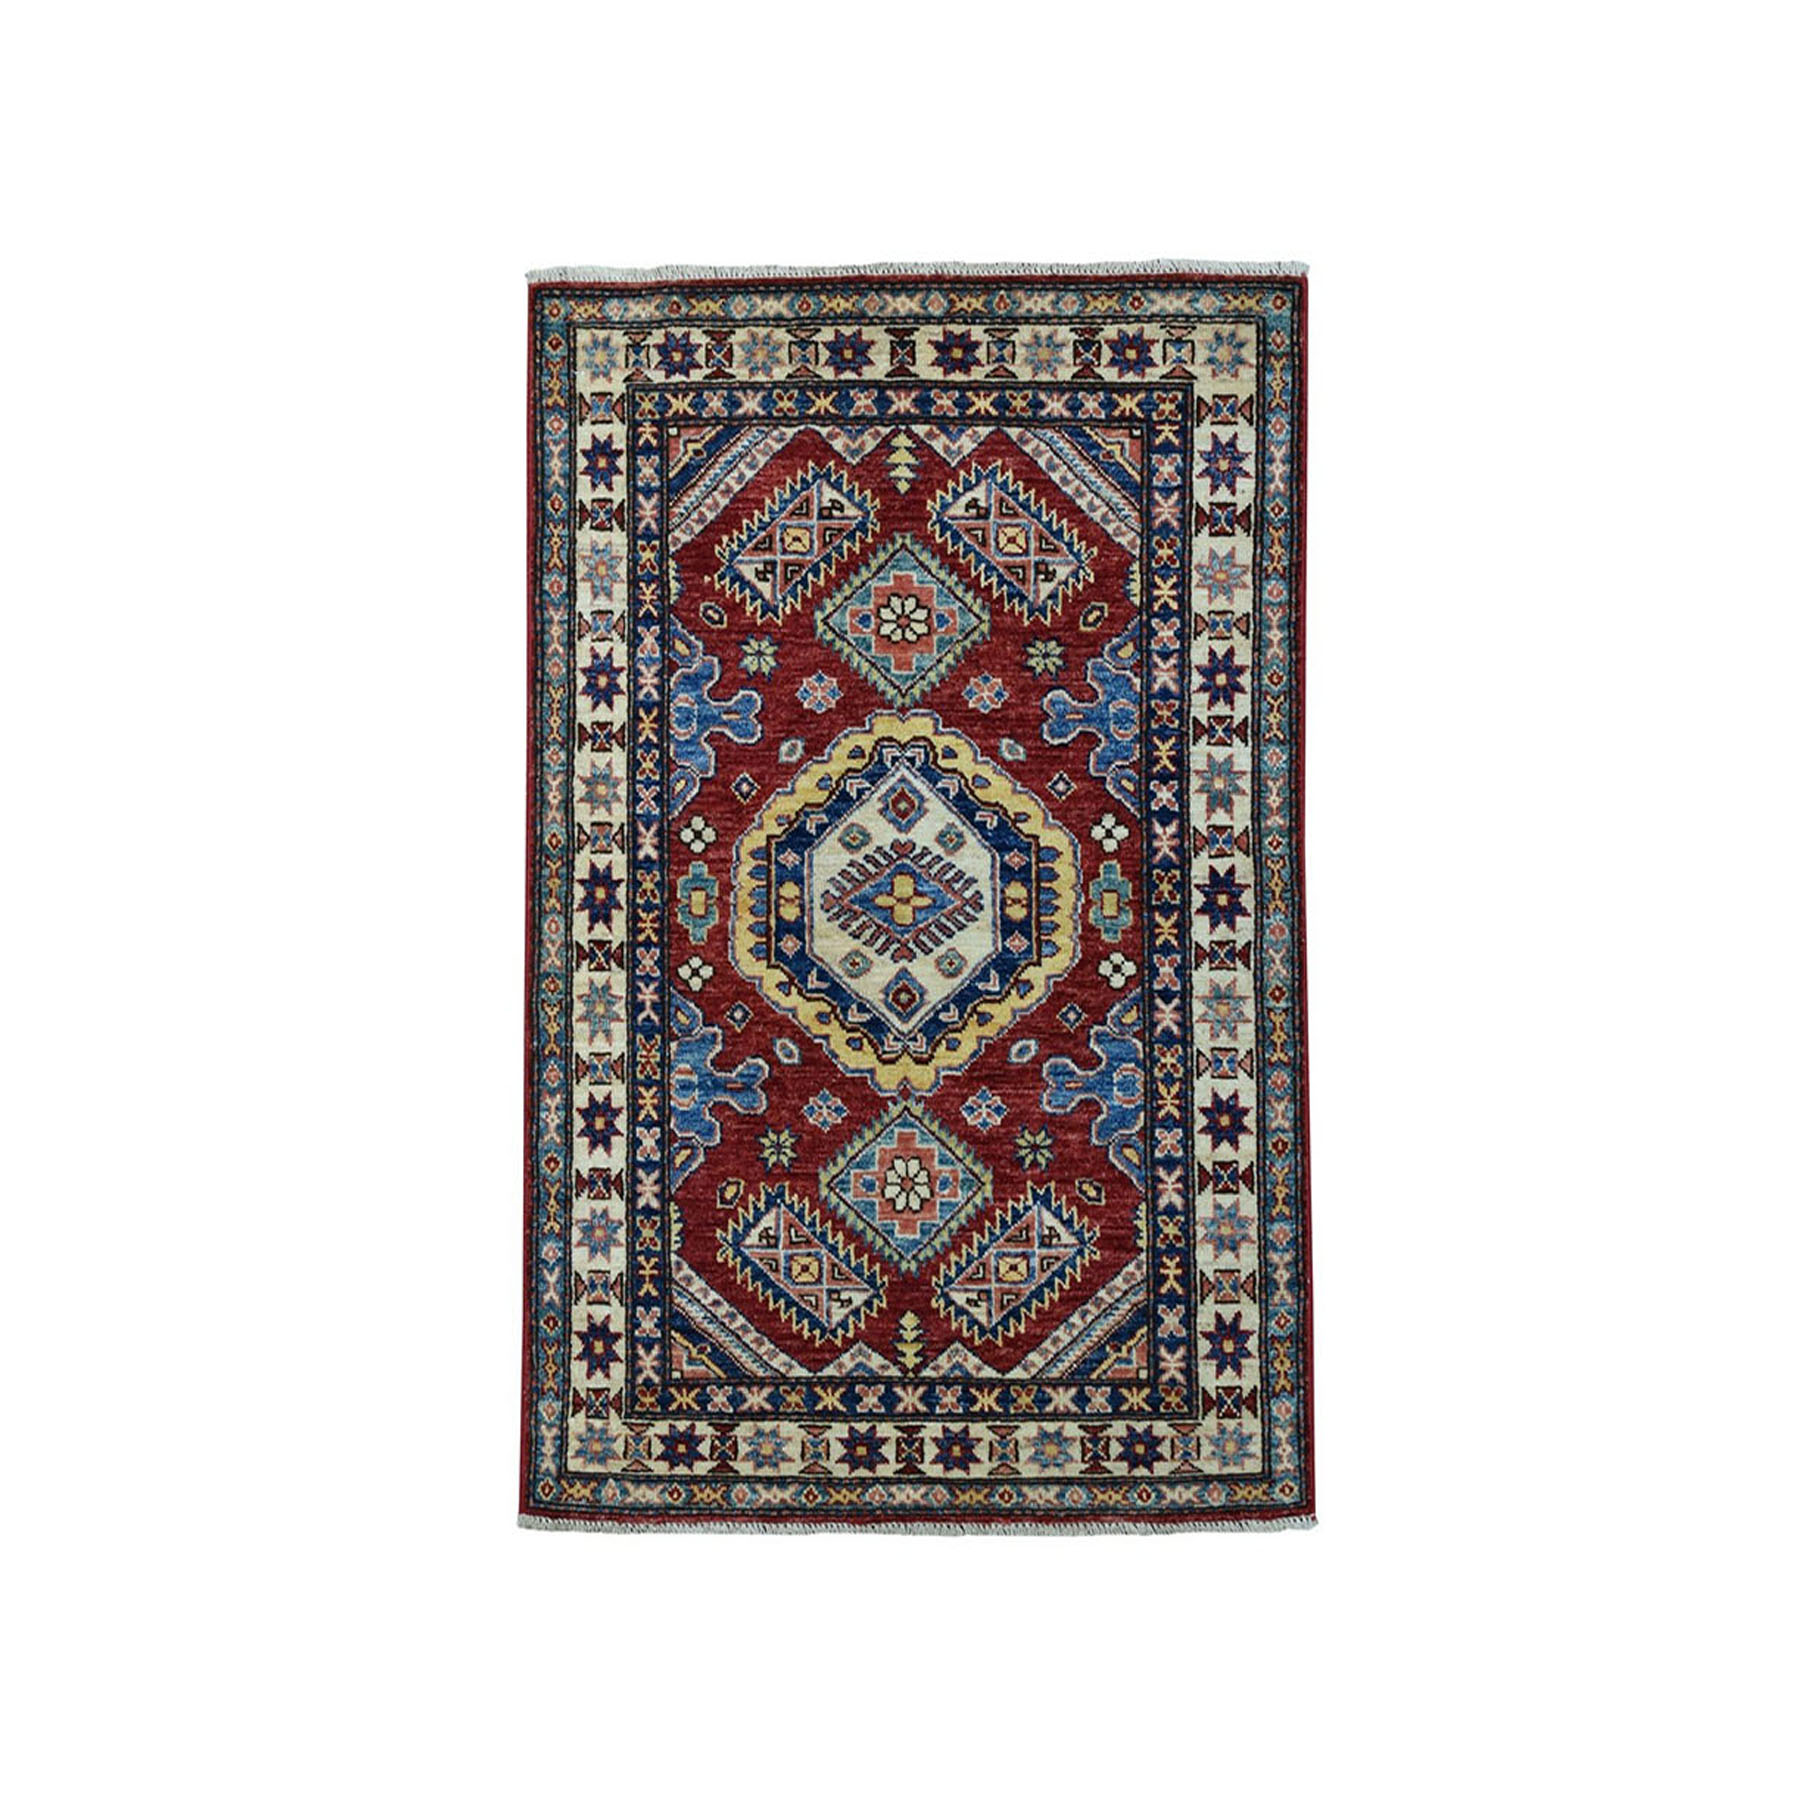 "2'9""x4' Red Super Kazak Geometric Design Pure Wool Hand-Knotted Oriental Rug"